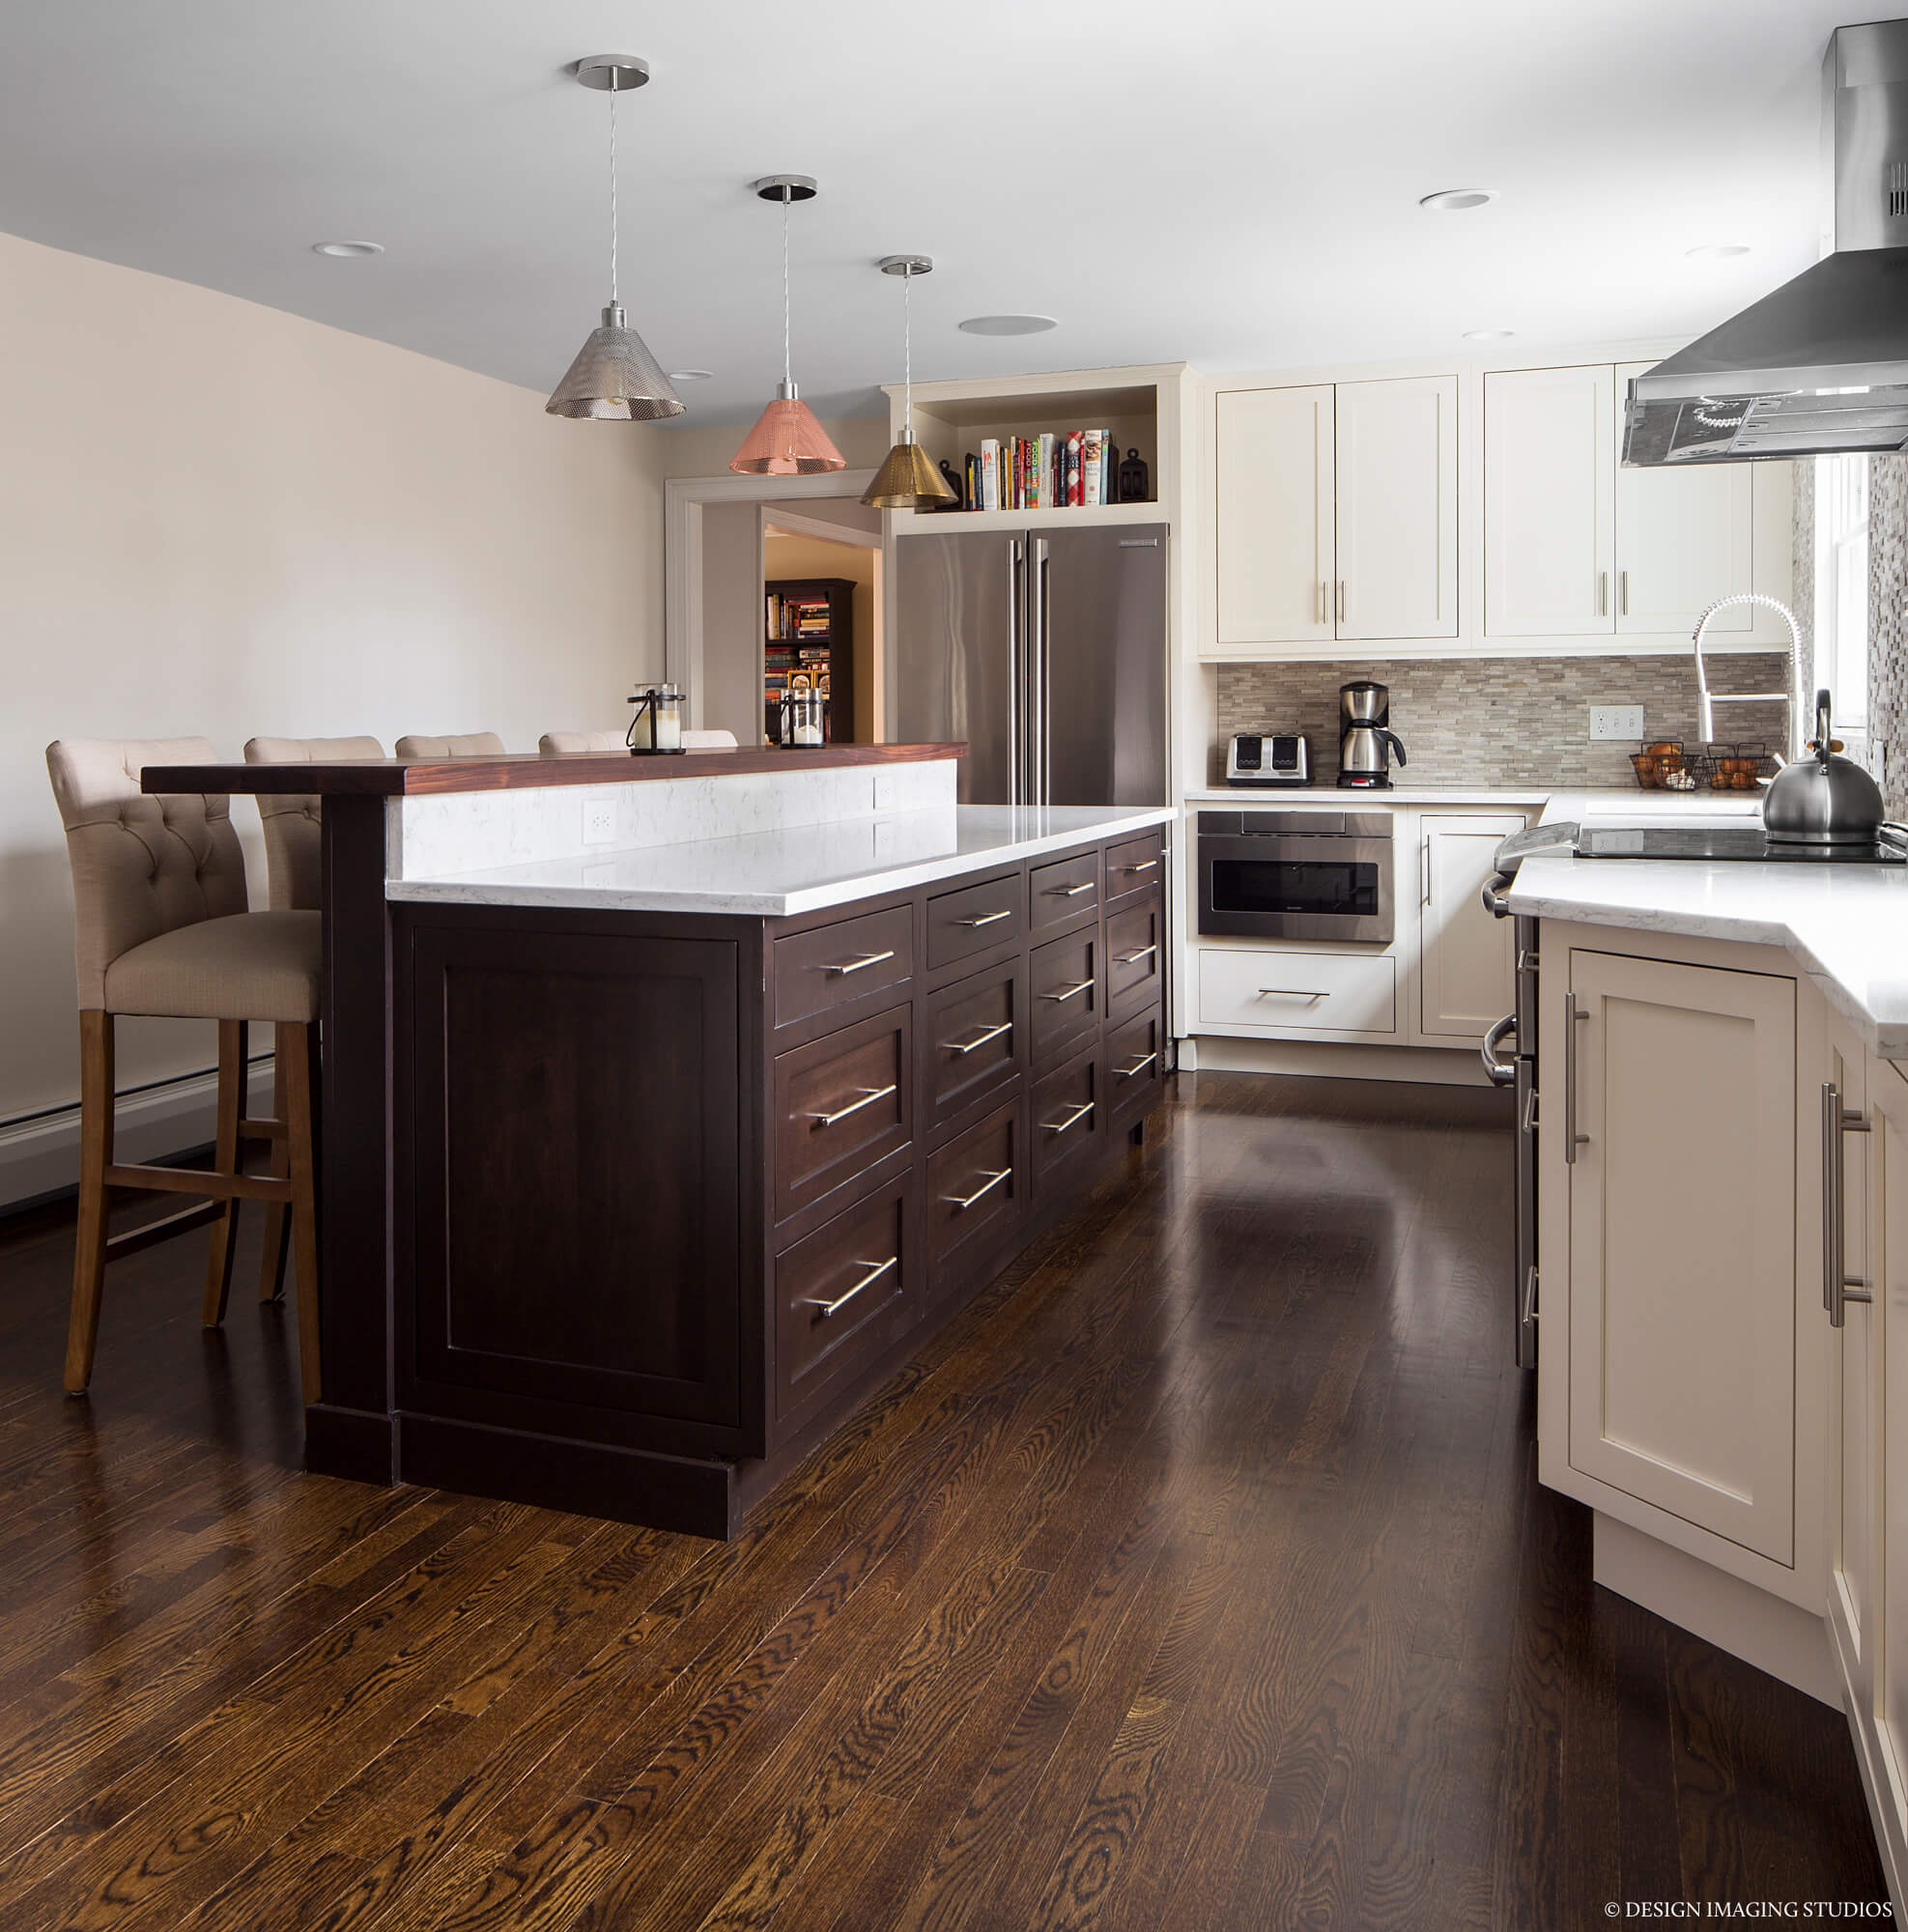 Whole Home Remodelling, Kitchen Remodeling, Design and Build, Custom Kitchen Renovation